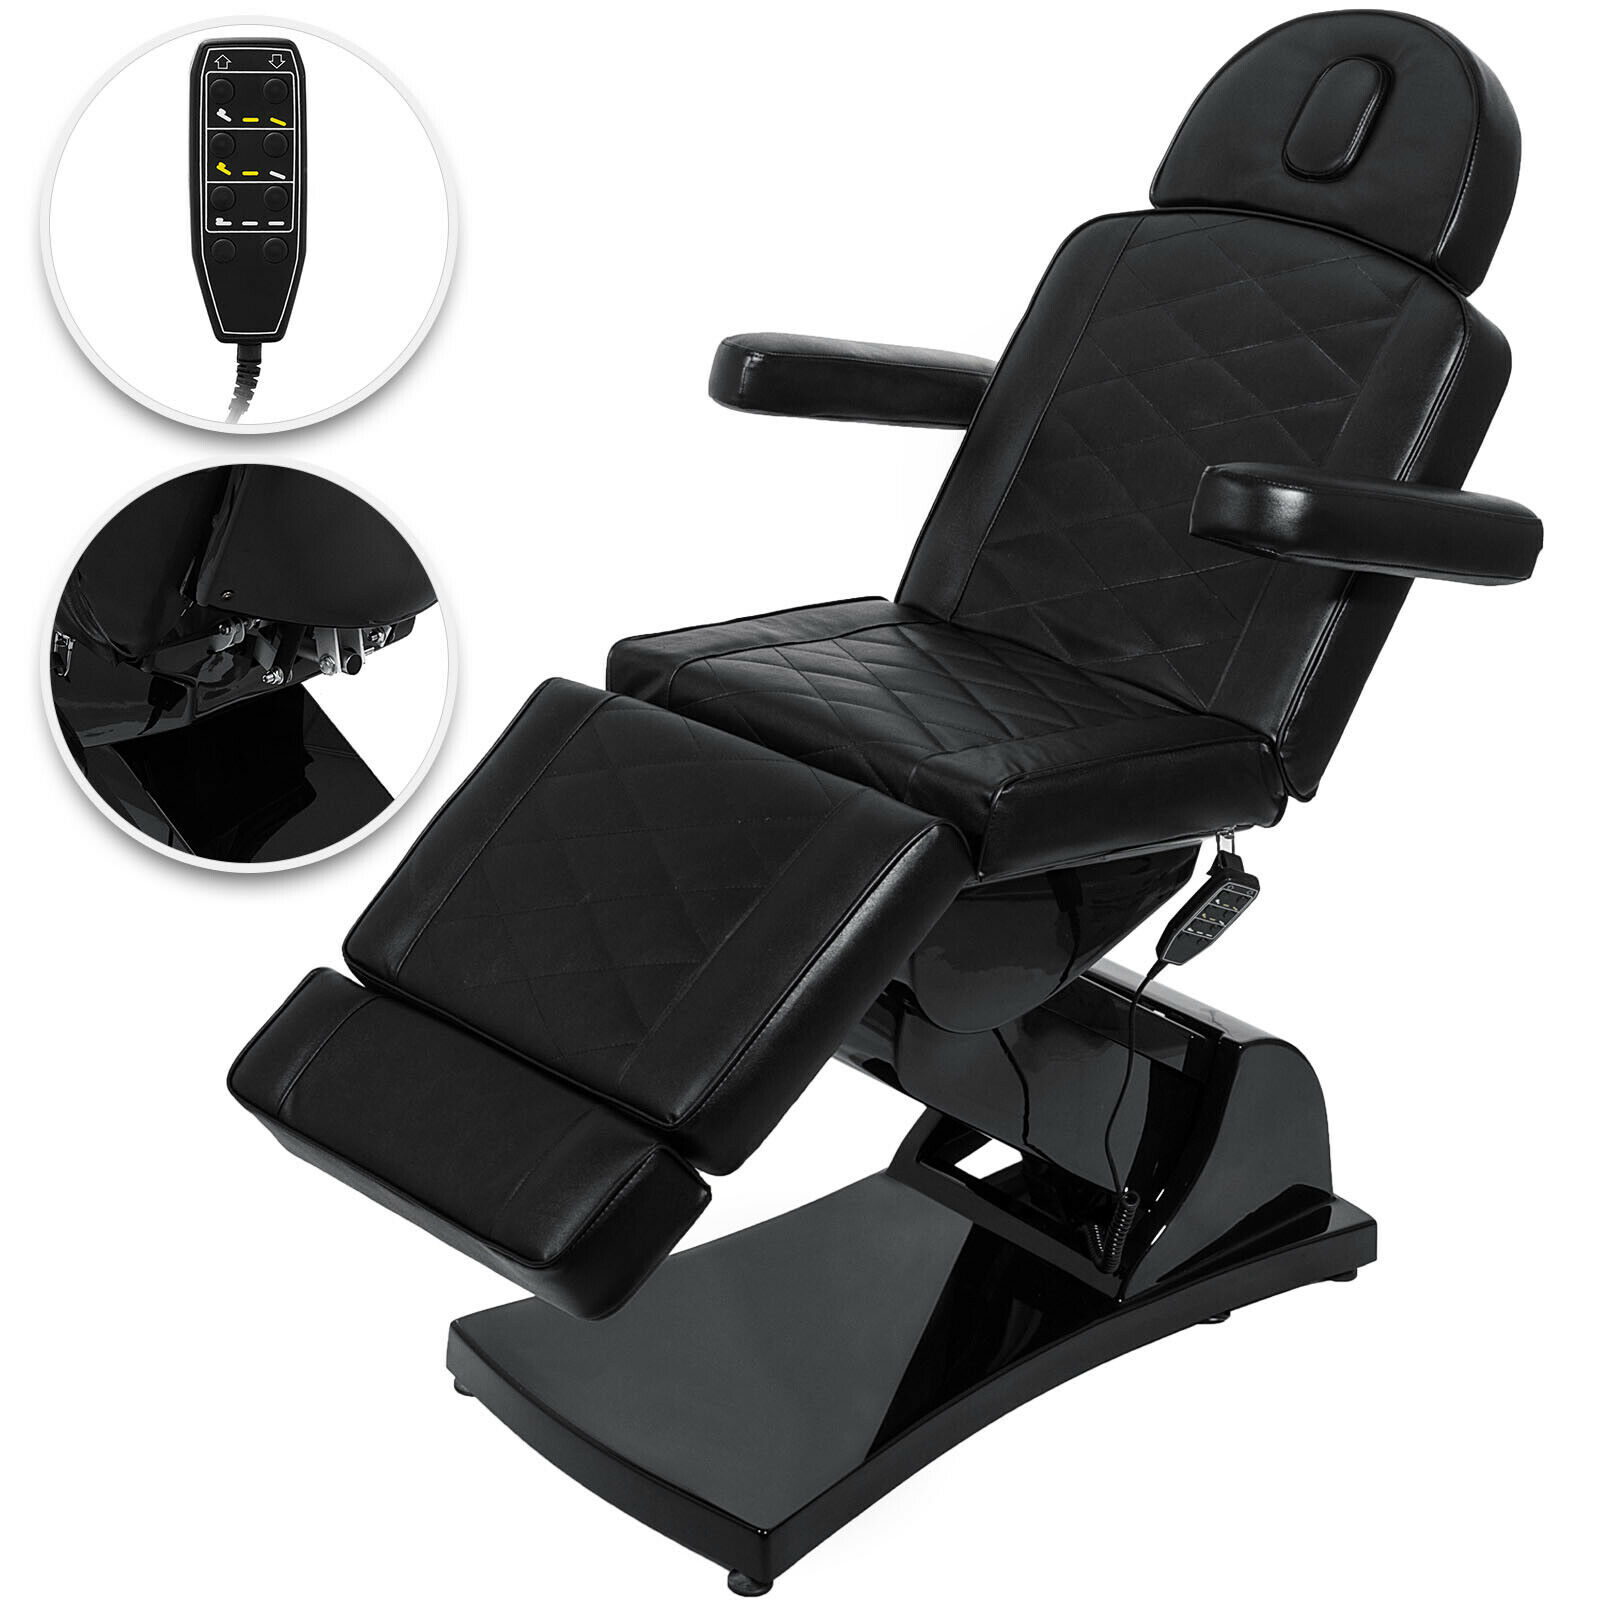 Professional 4 Motor Beauty or Teeth Whitening Chair - Black